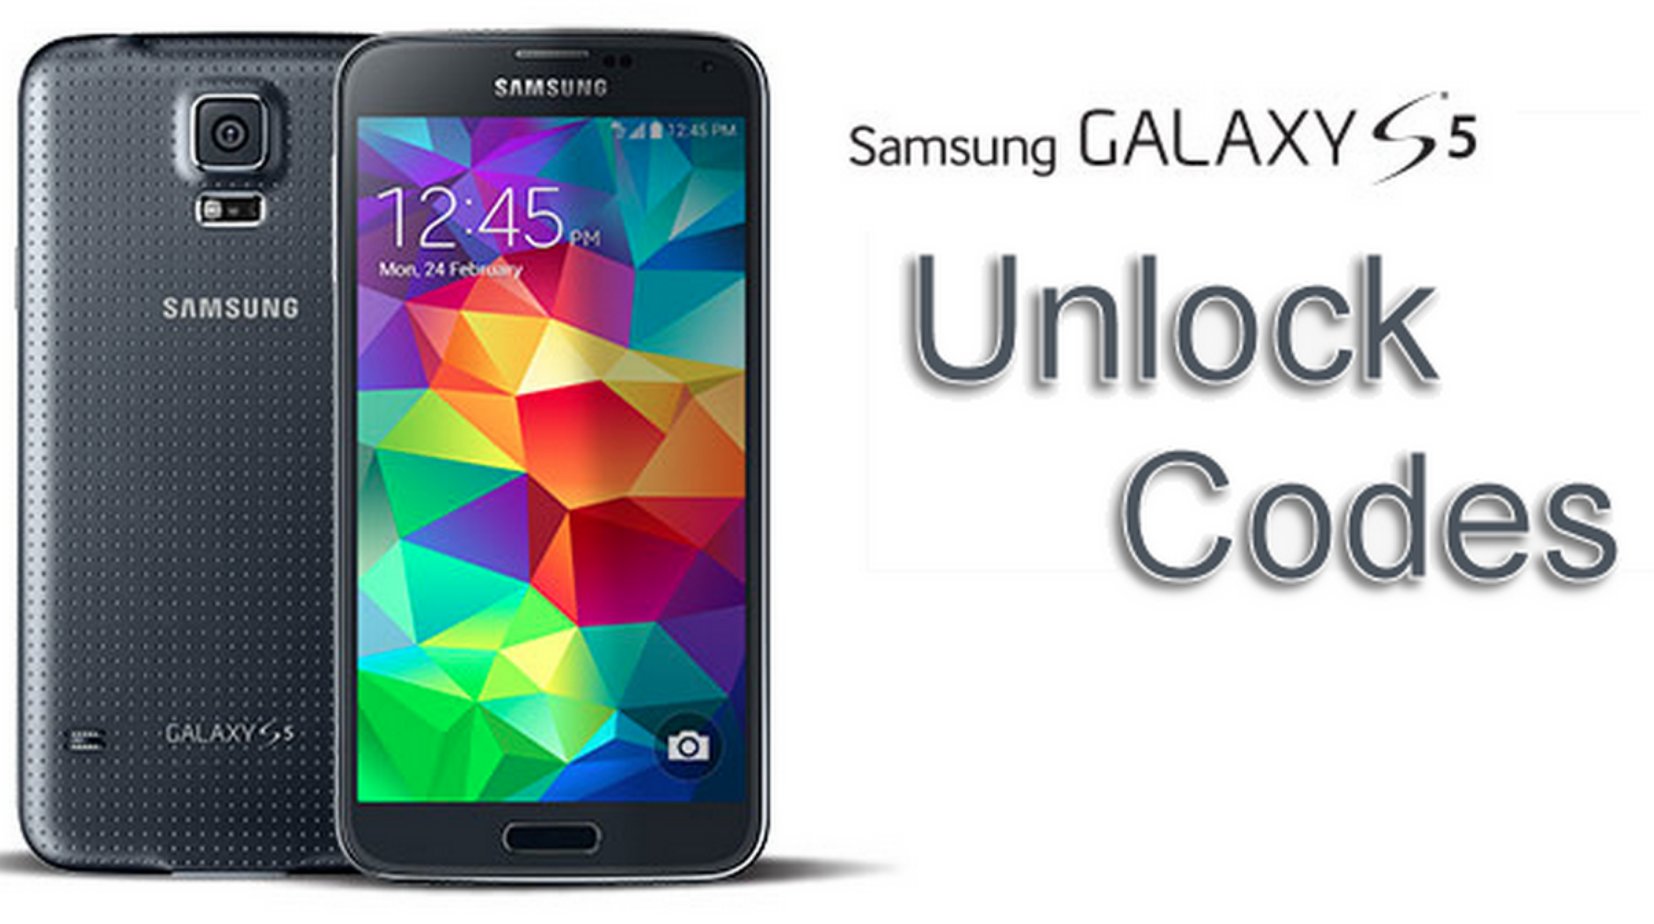 Unlock Samsung Galaxy S4 Codes